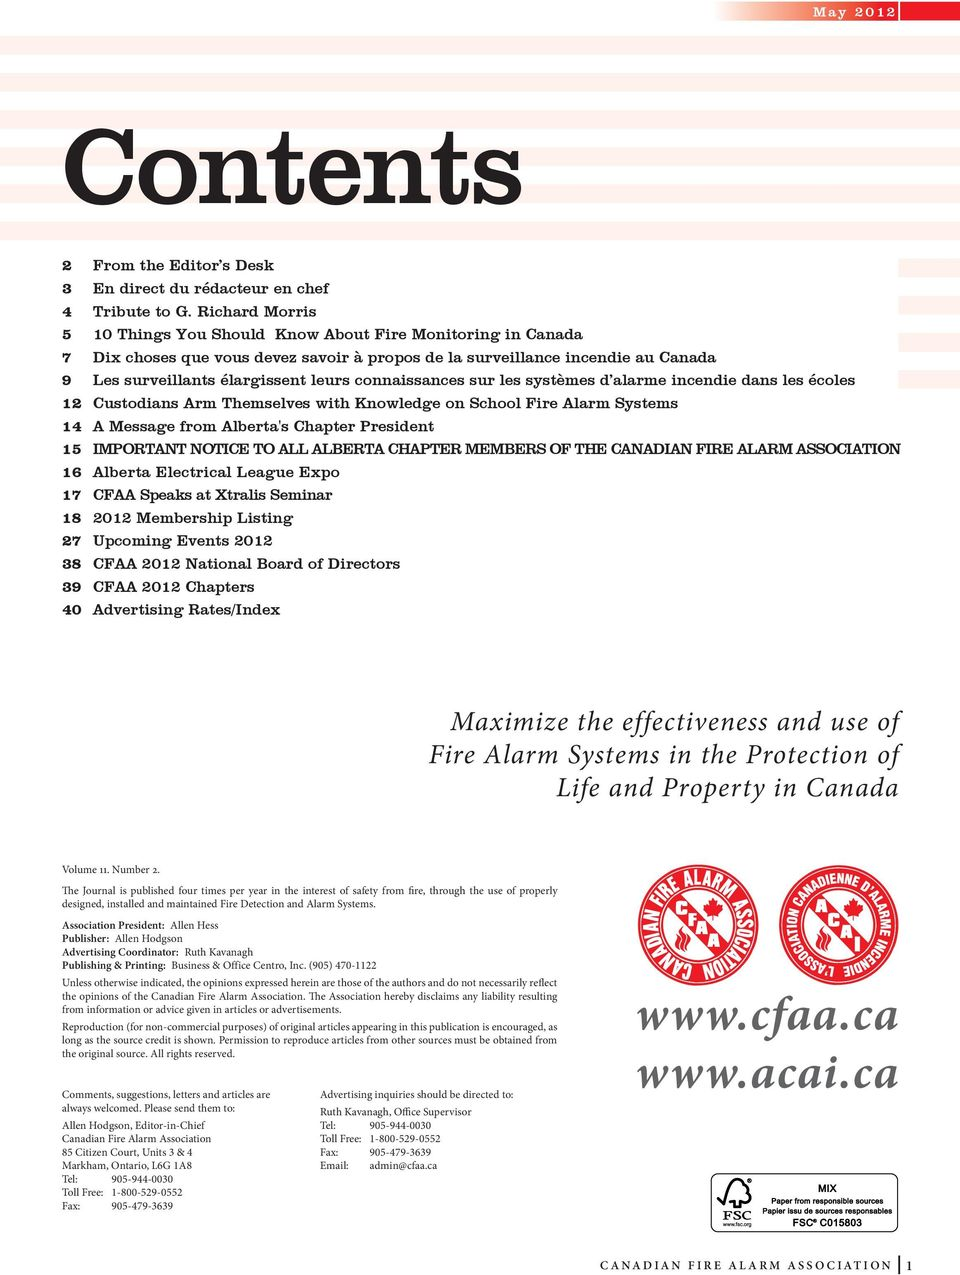 connaissances sur les systèmes d alarme incendie dans les écoles 12 Custodians Arm Themselves with Knowledge on School Fire Alarm Systems 14 A Message from Alberta's Chapter President 15 Important